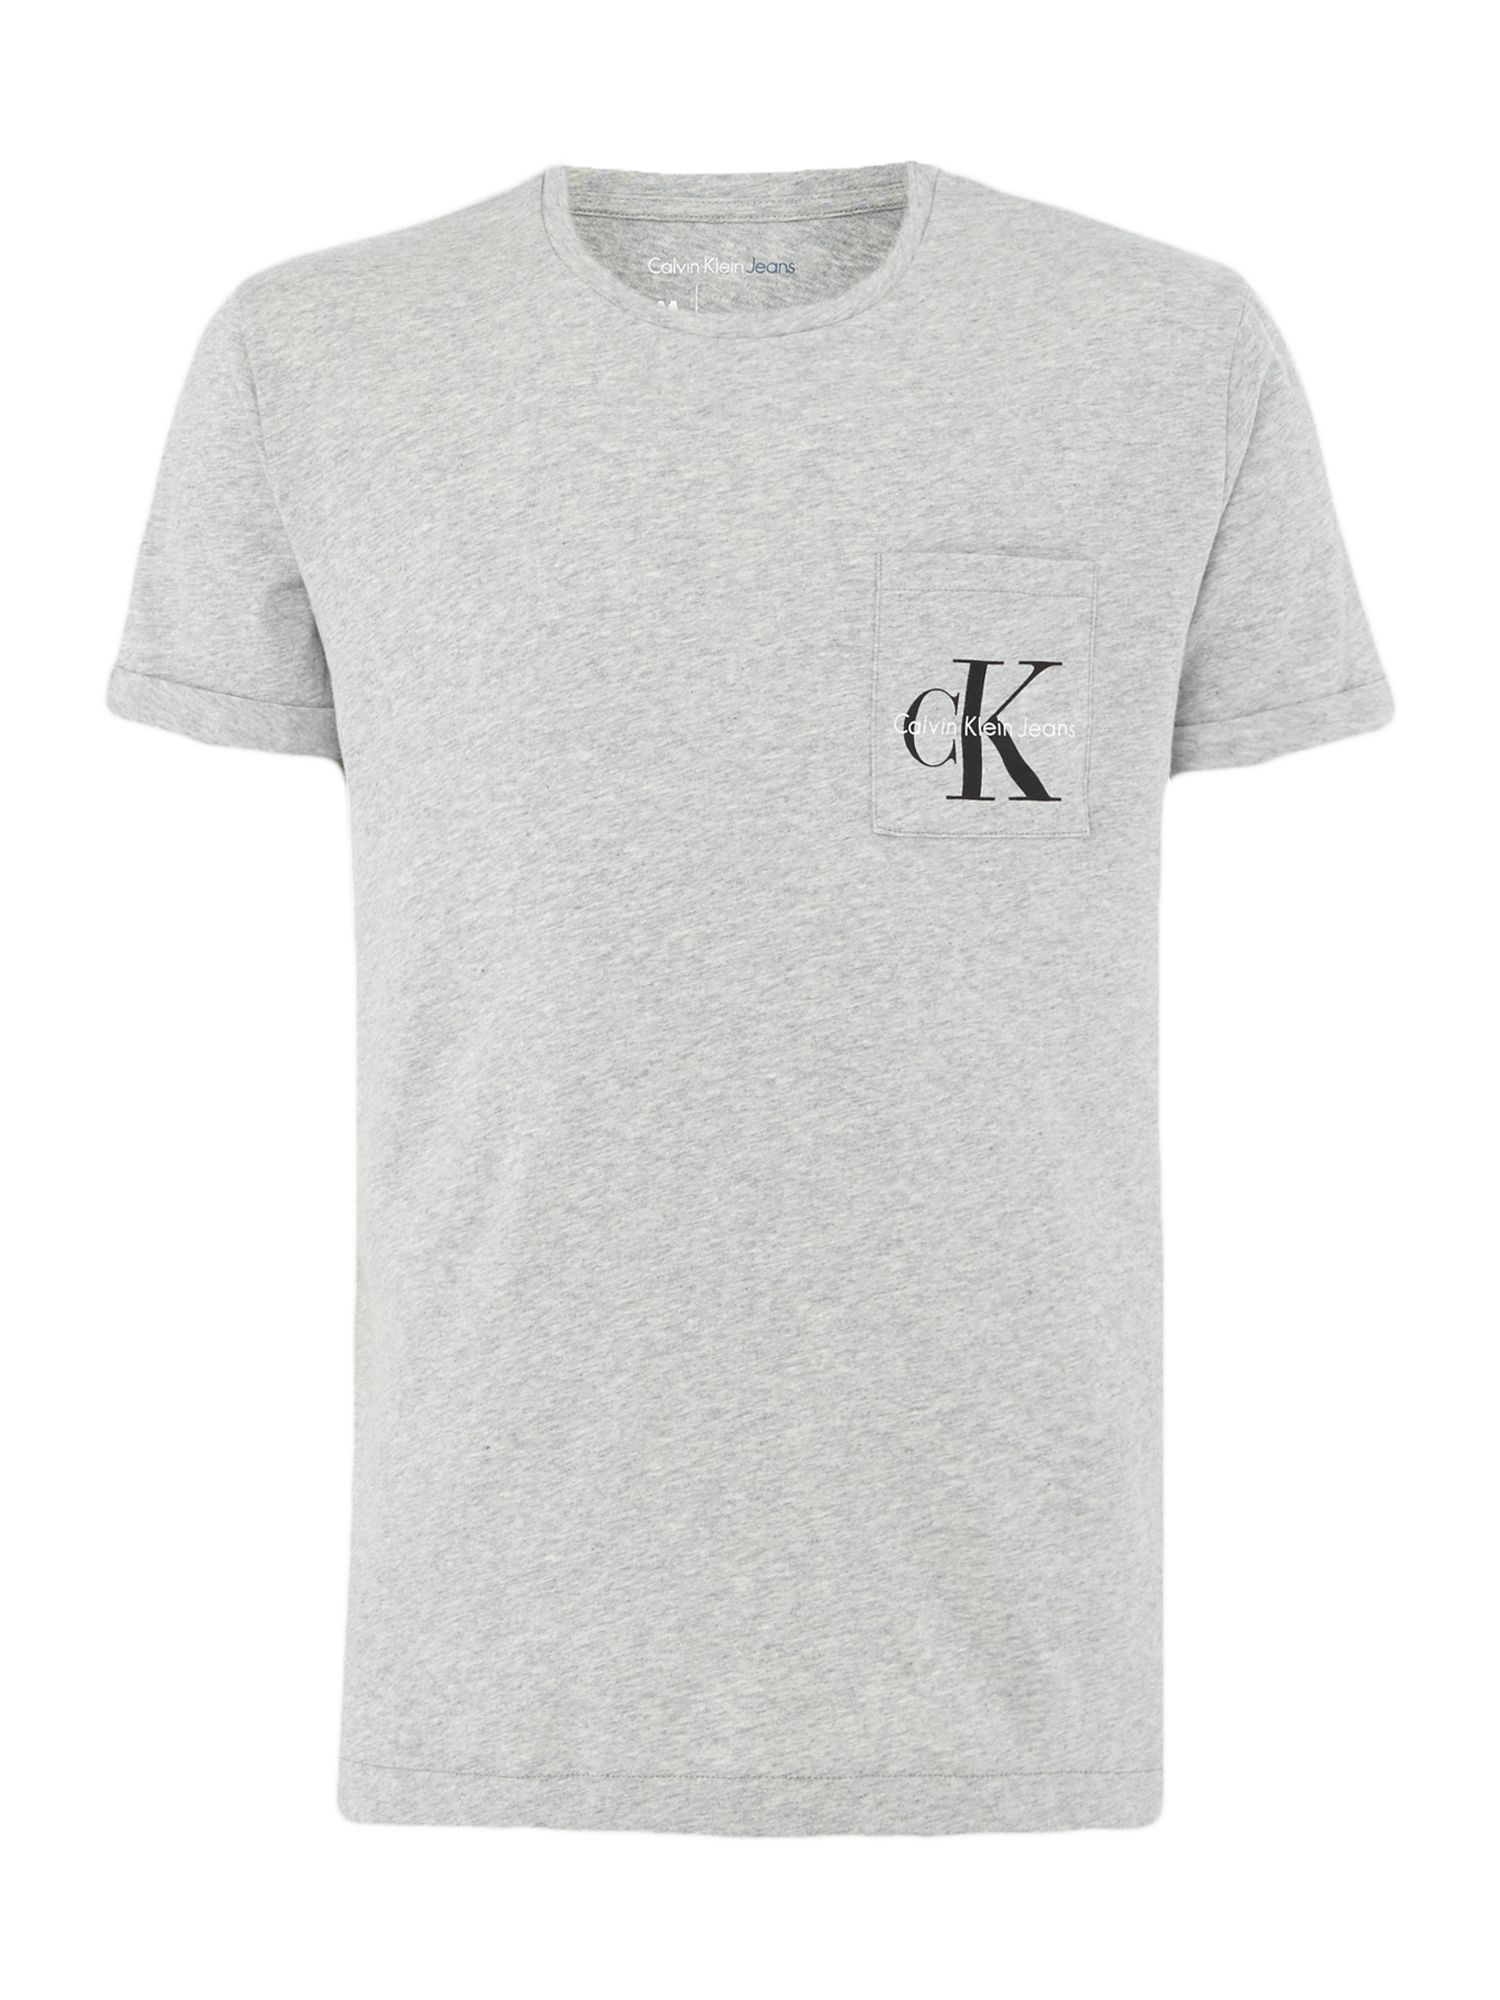 Men's Calvin Klein Bolan True Icon T-shirt, Light Grey